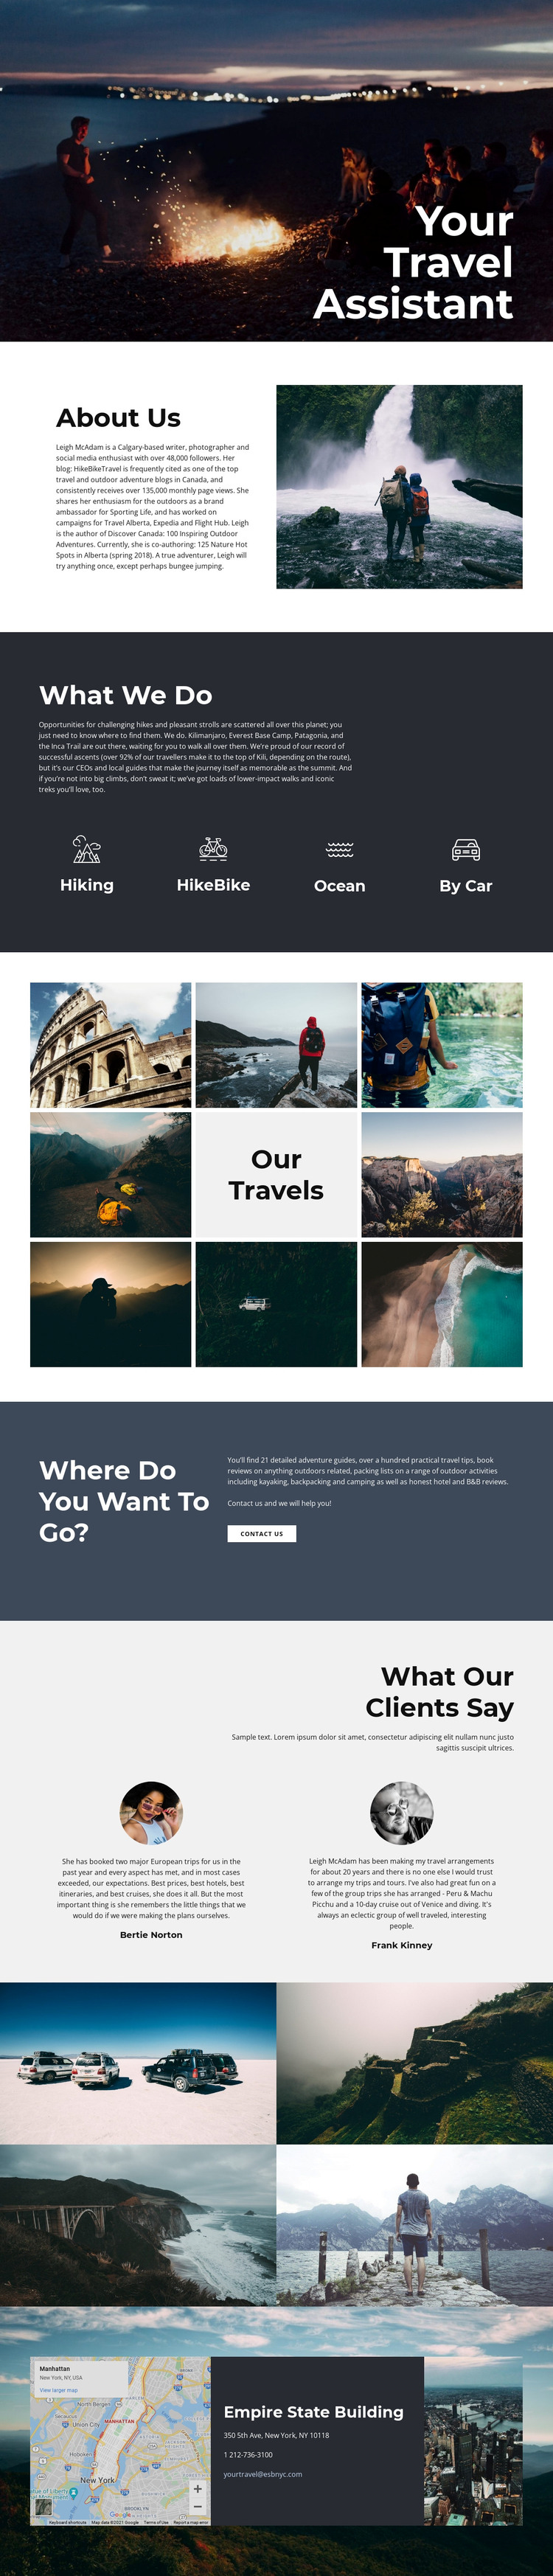 Travel Assistant Woocommerce Theme